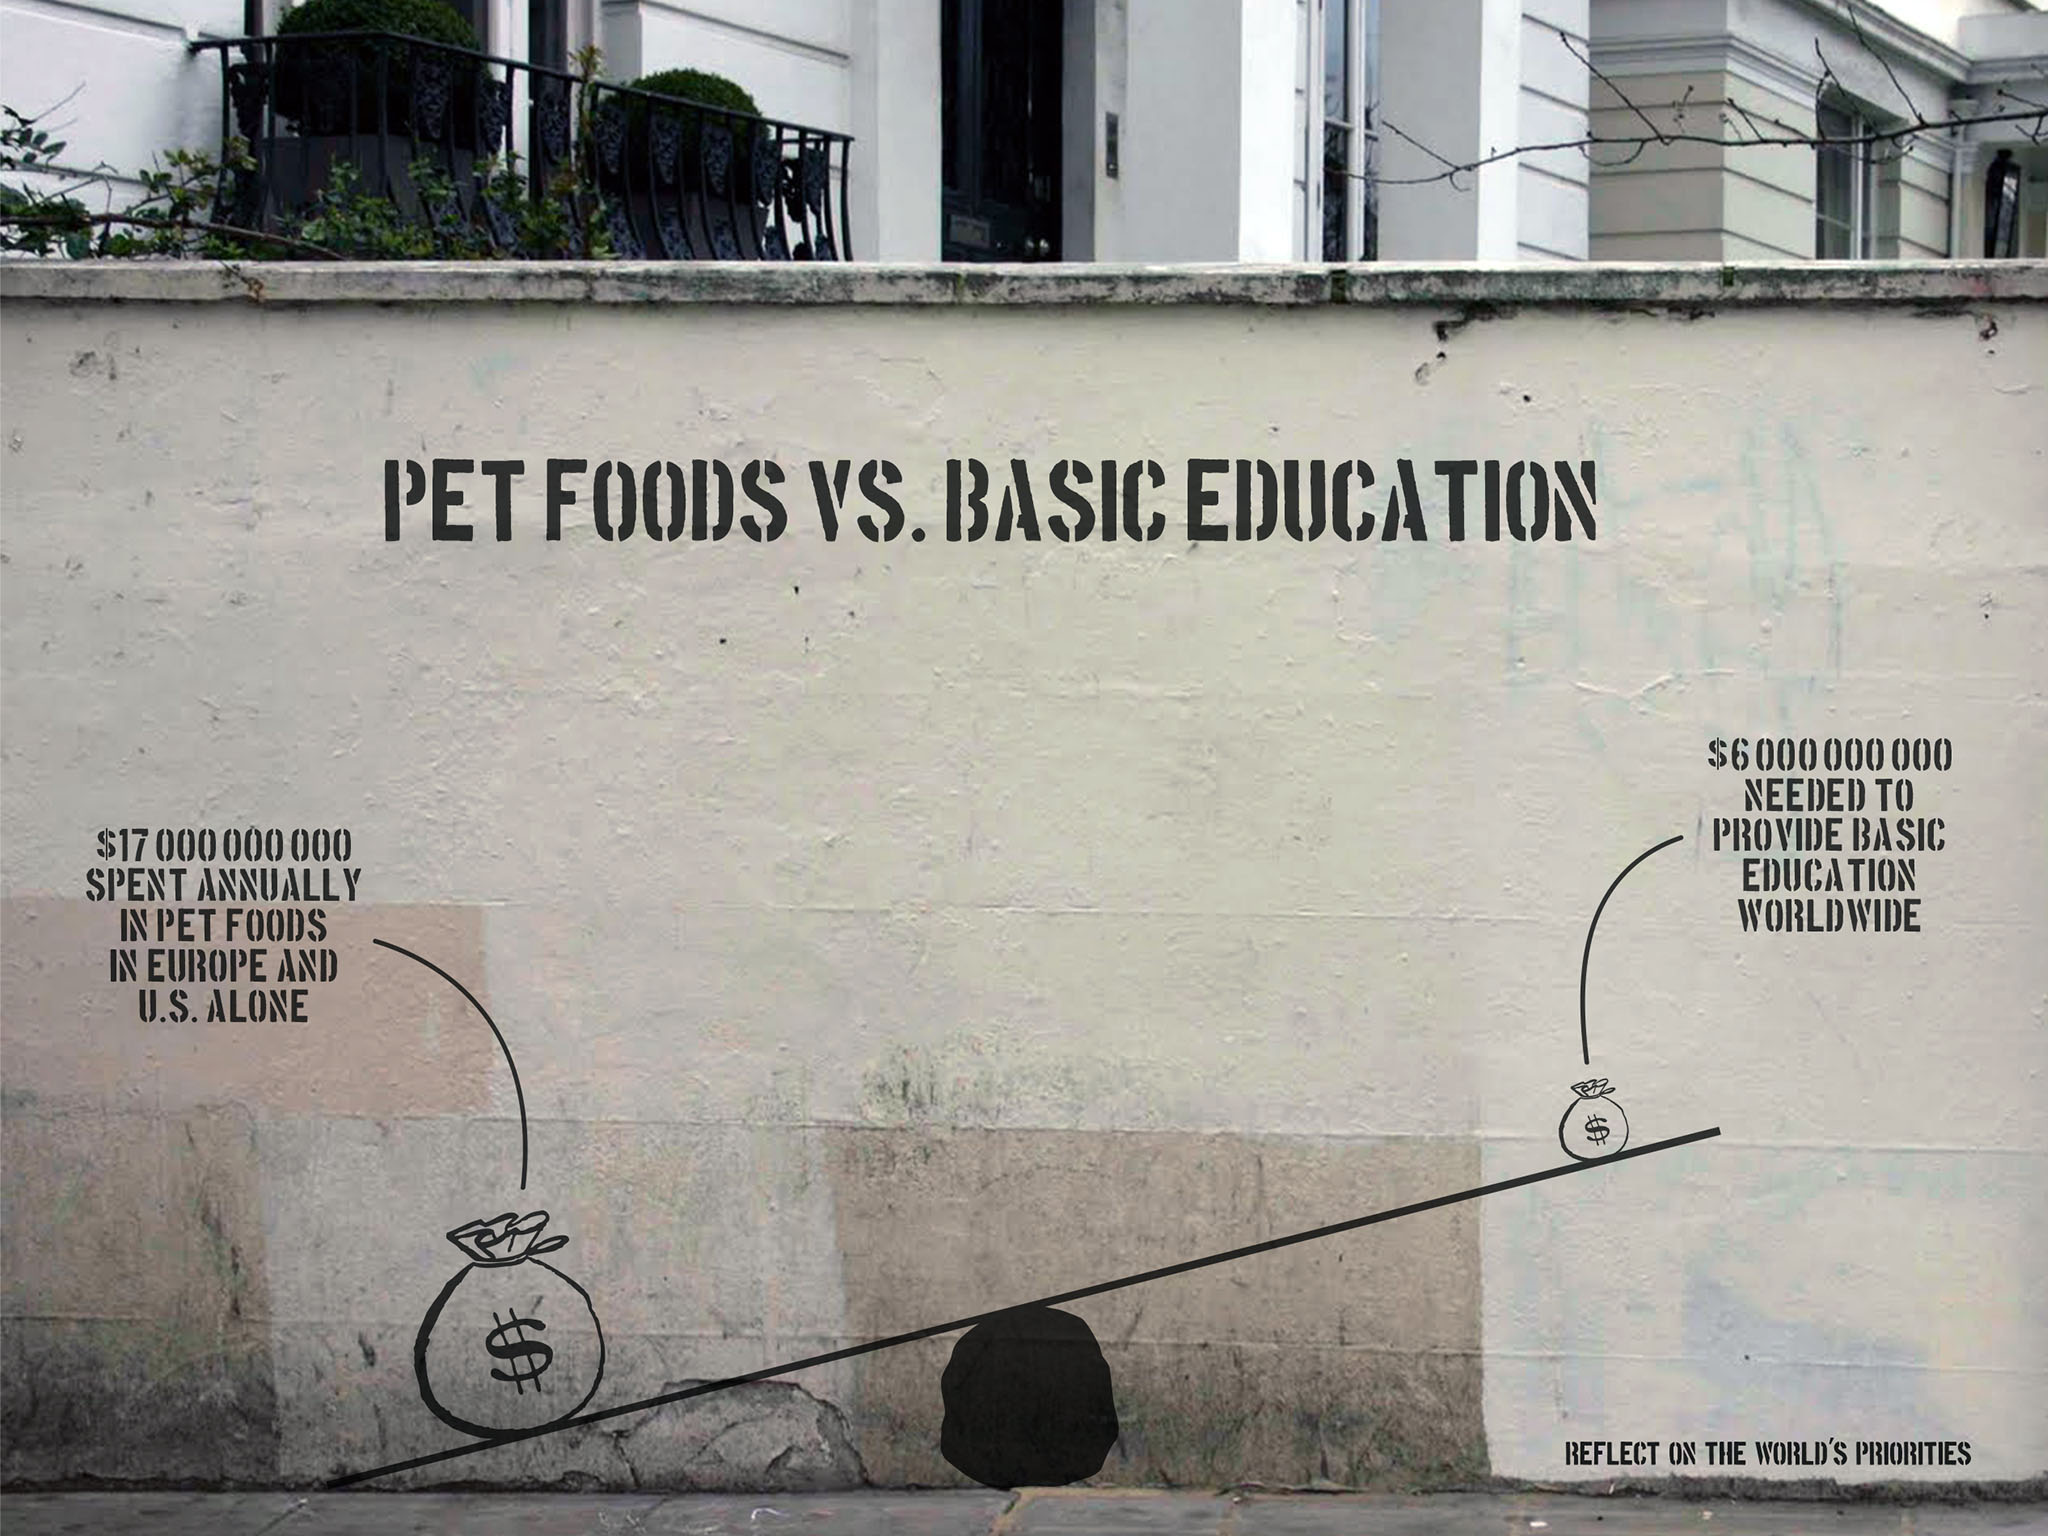 Pet Foods vs. Basic Education